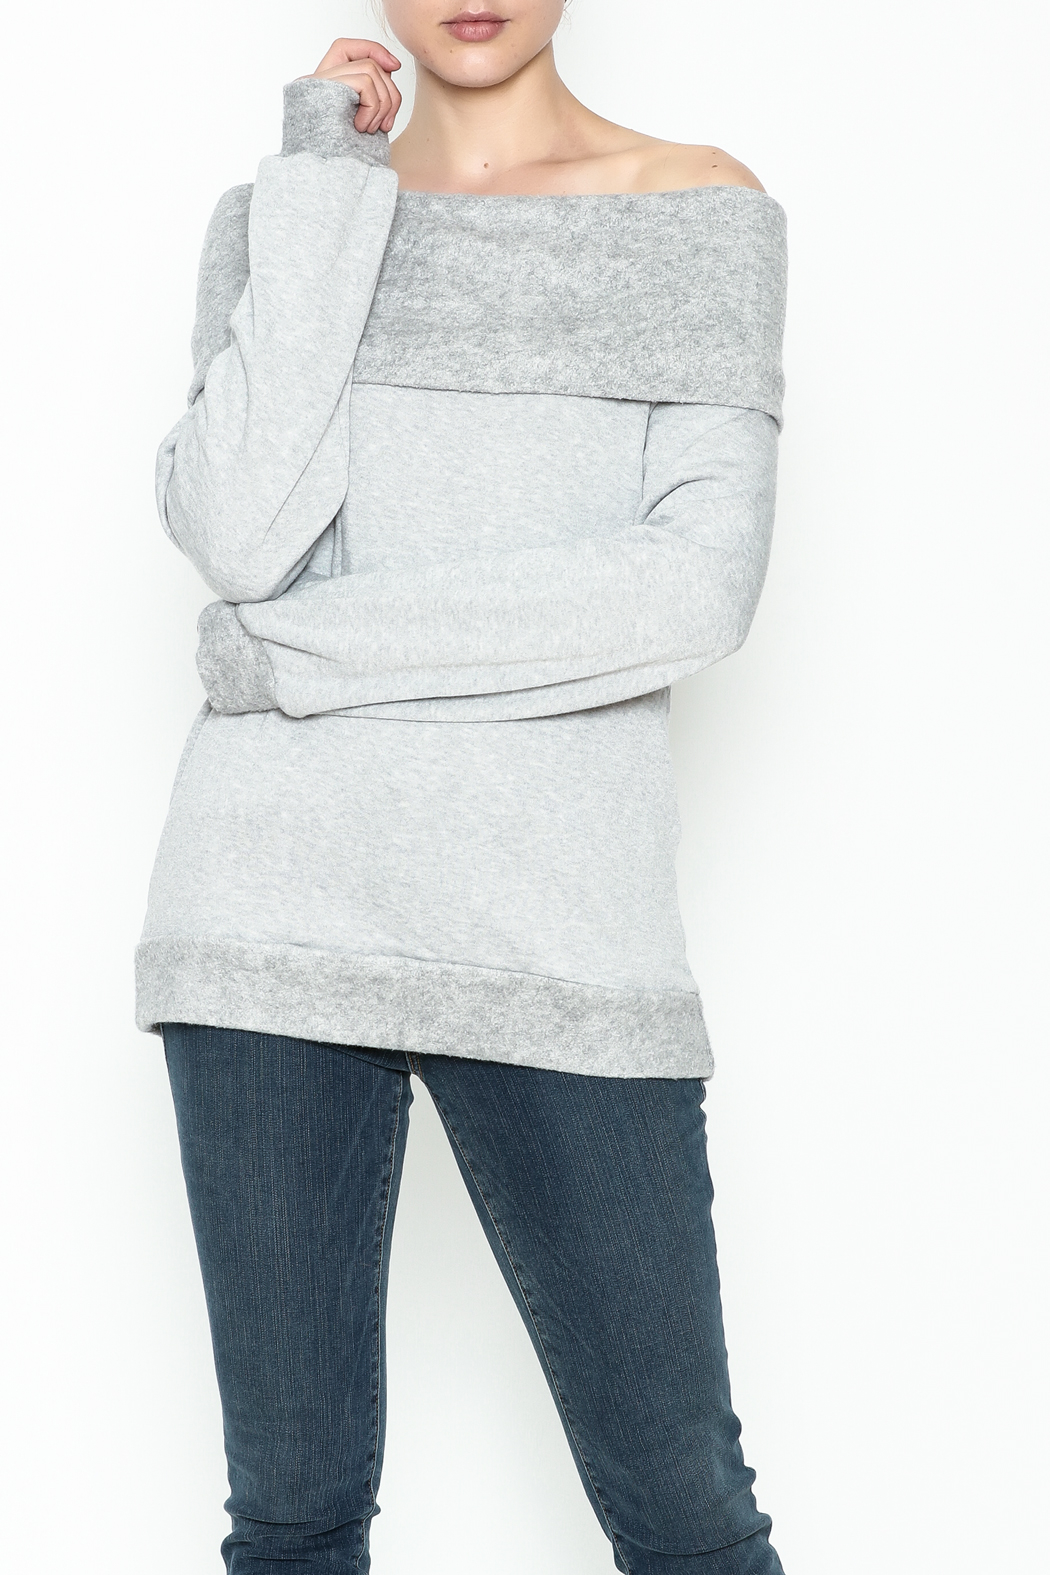 Elan Convertible Cowl Sweater - Main Image